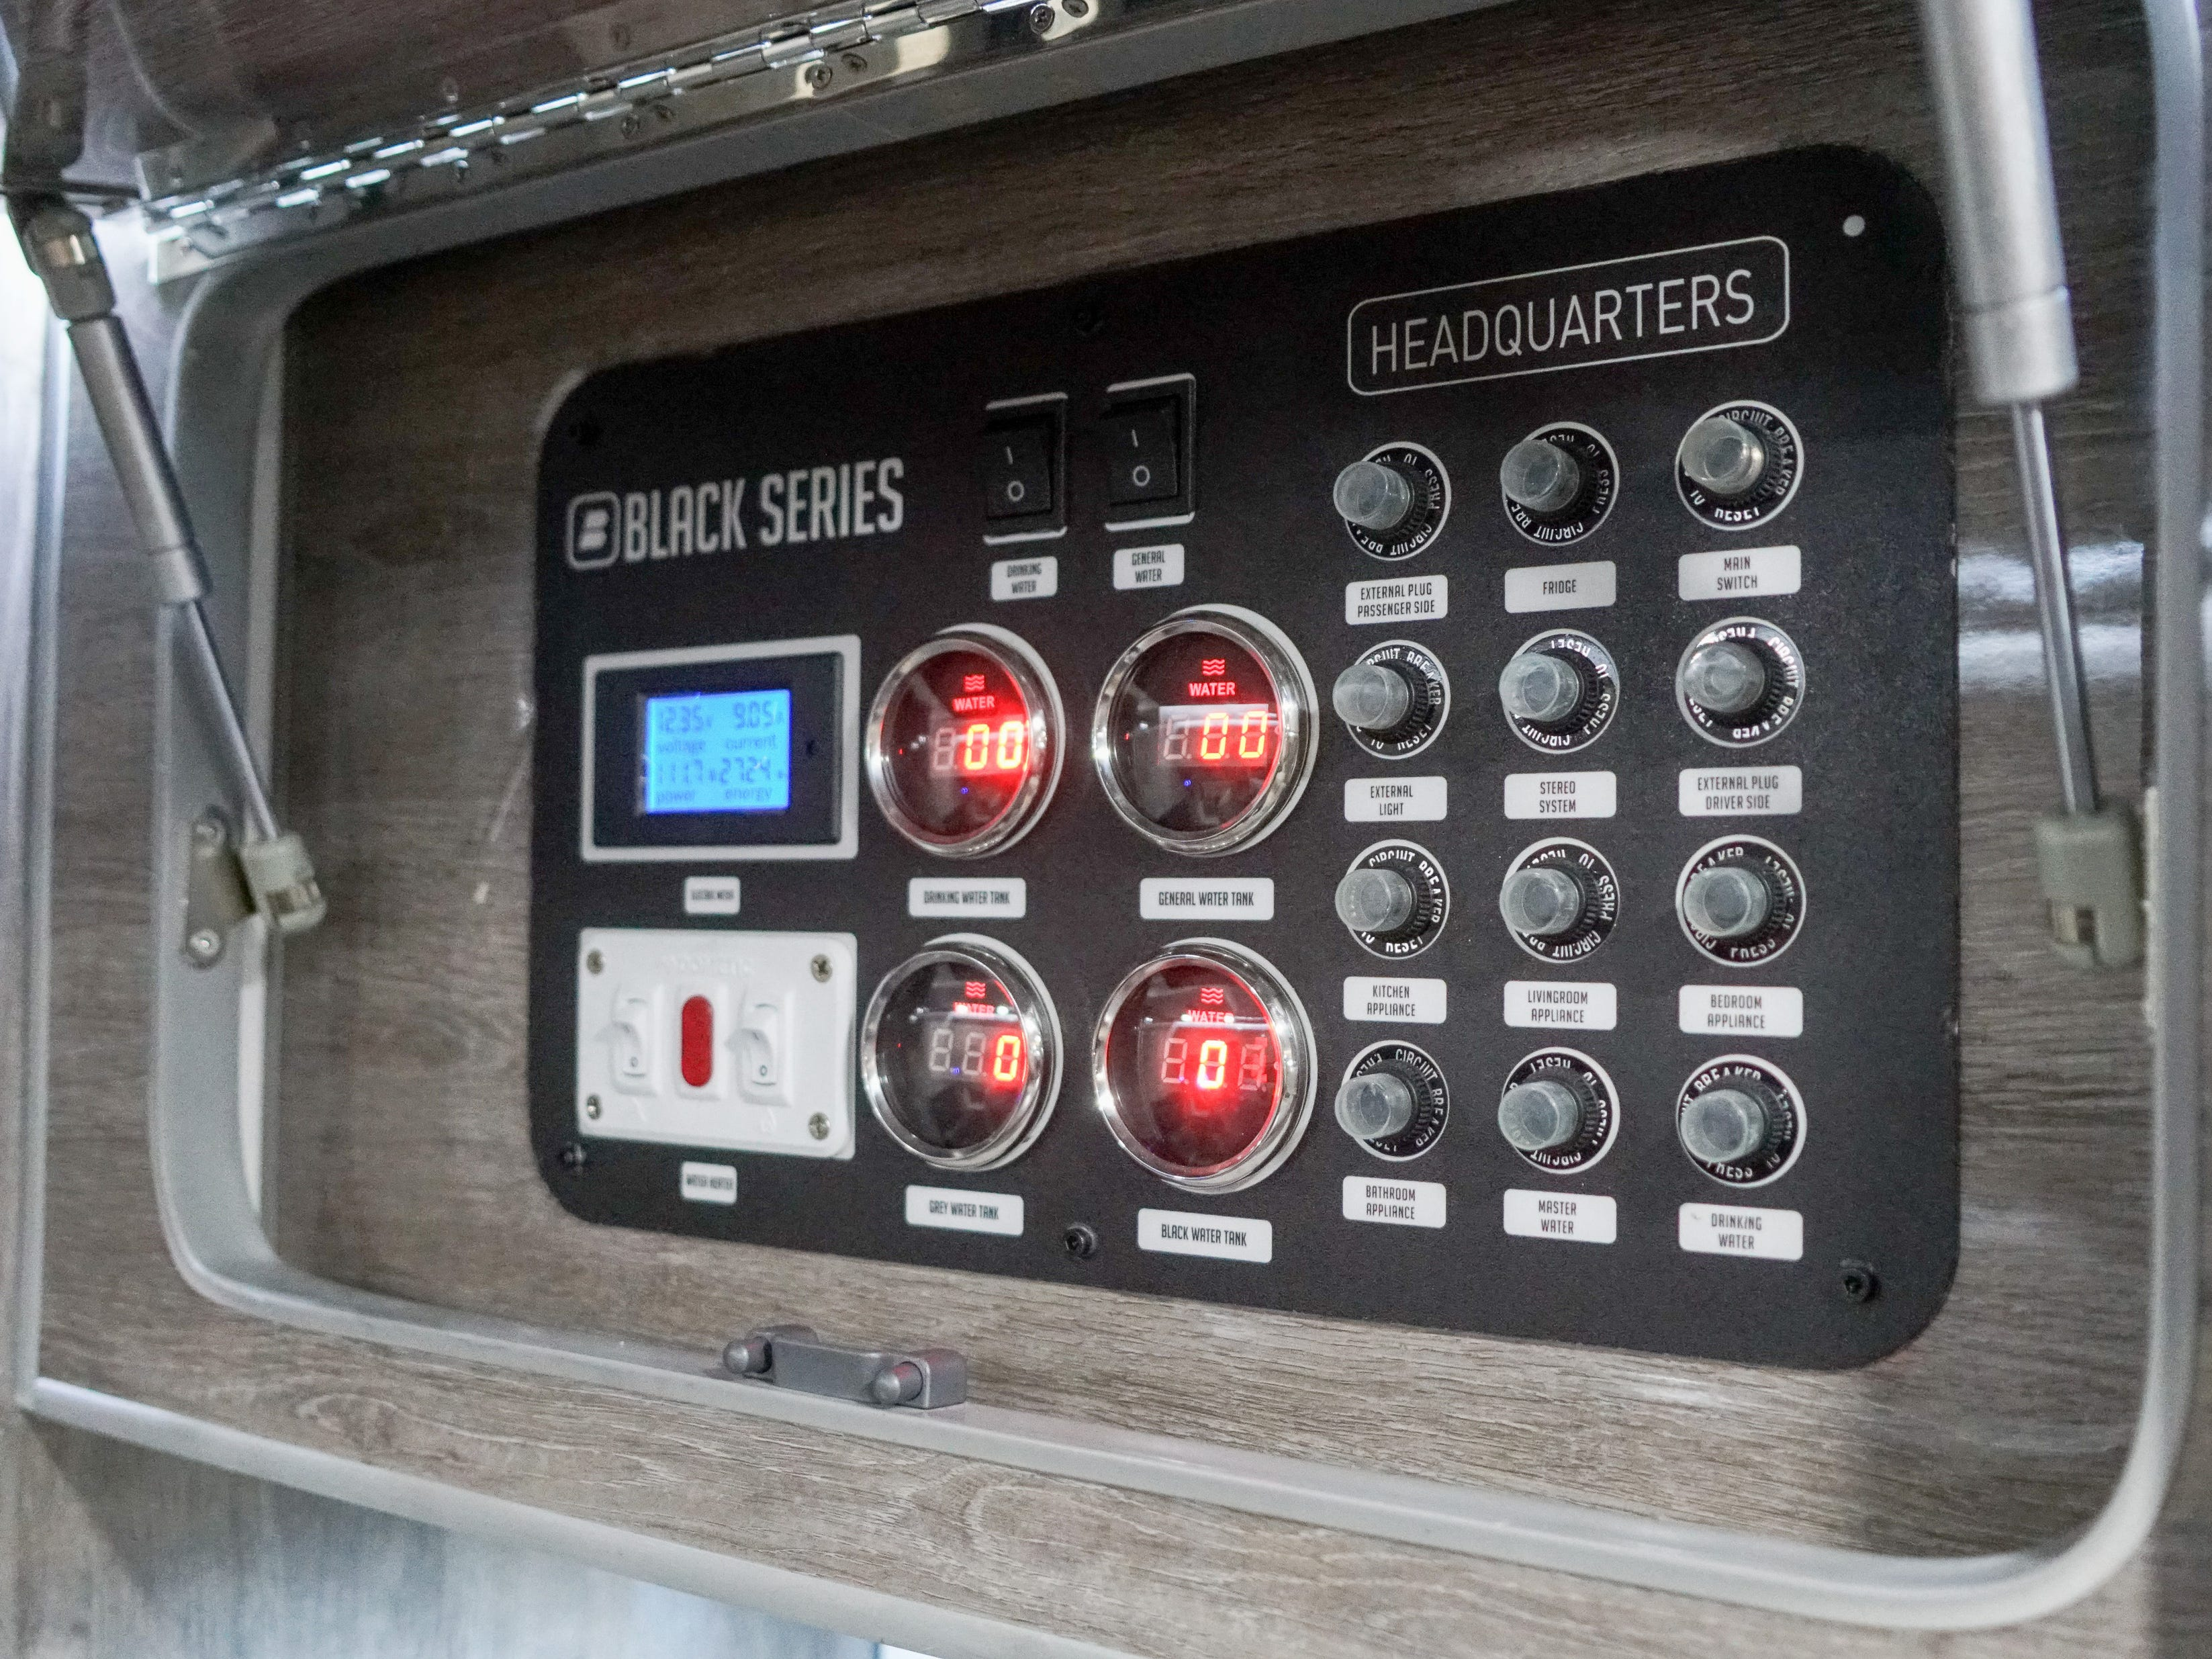 The electronic controls for this RV make it easy to add solar power.